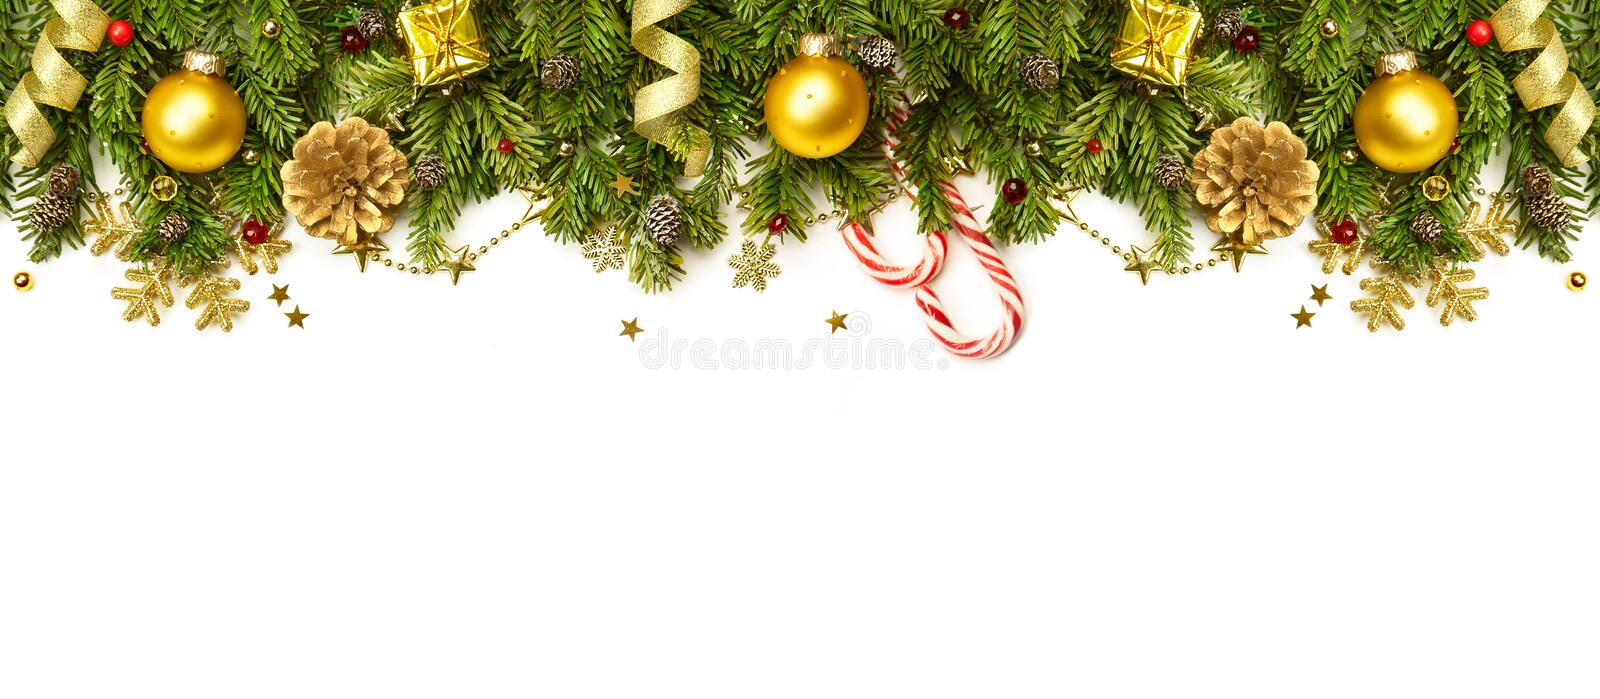 Christmas Decorations Border isolated on white background royalty free stock photography